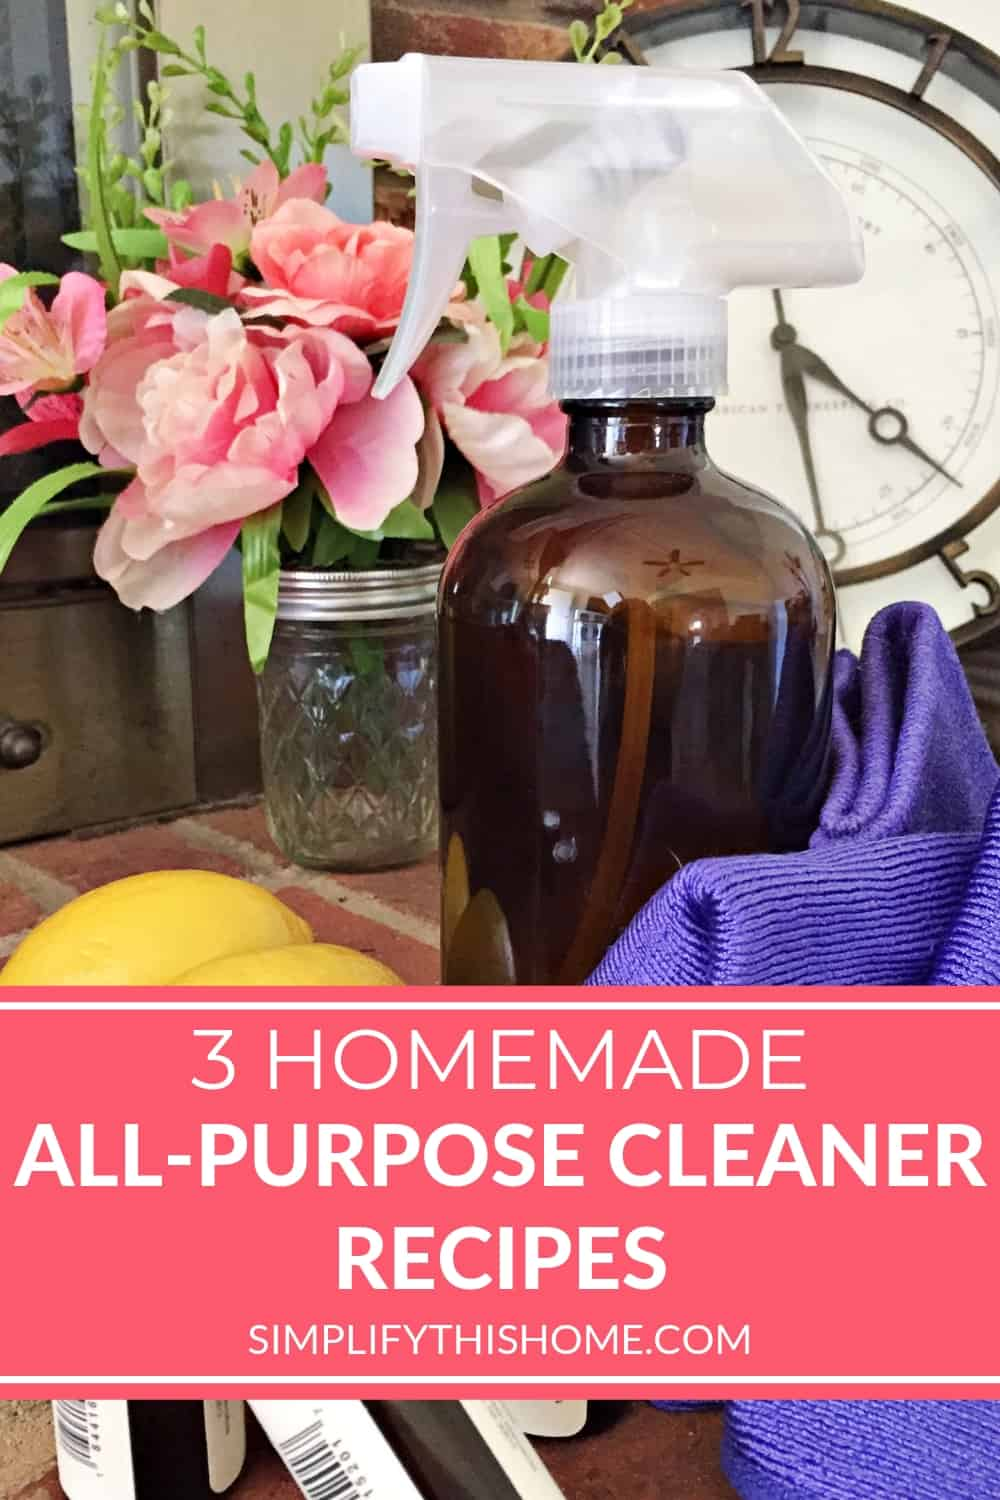 3 homemade all-purpose cleaner recipes